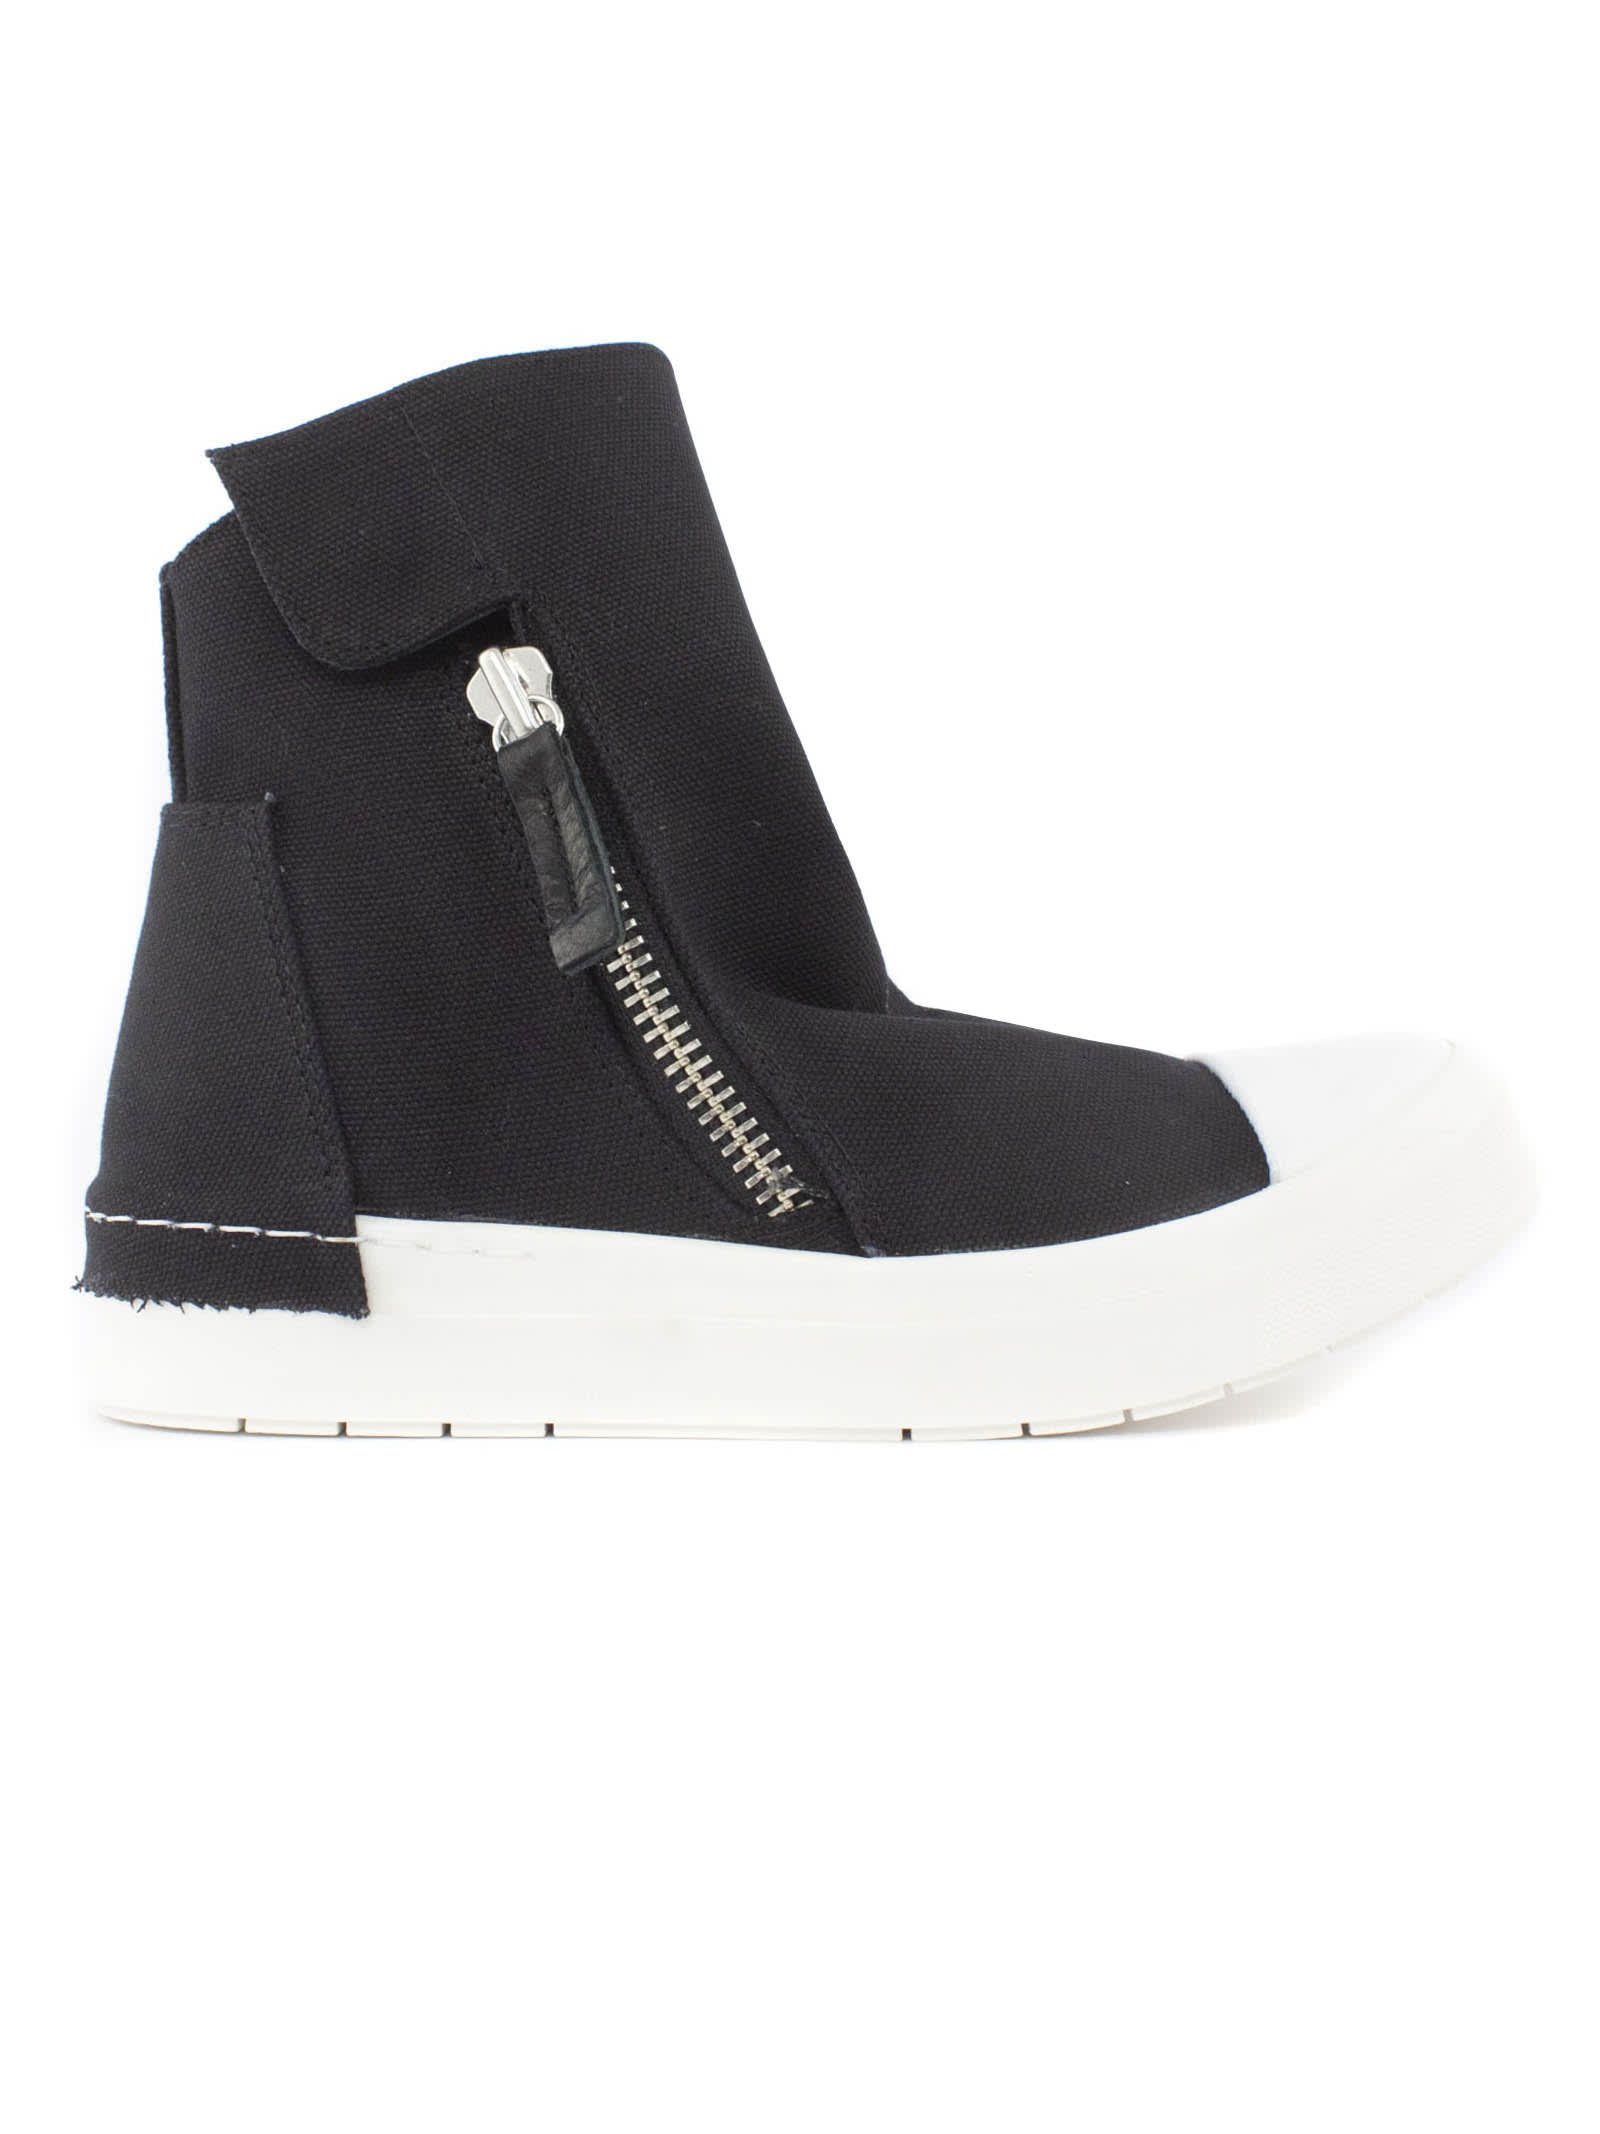 Black Canvas High Top Sneakers